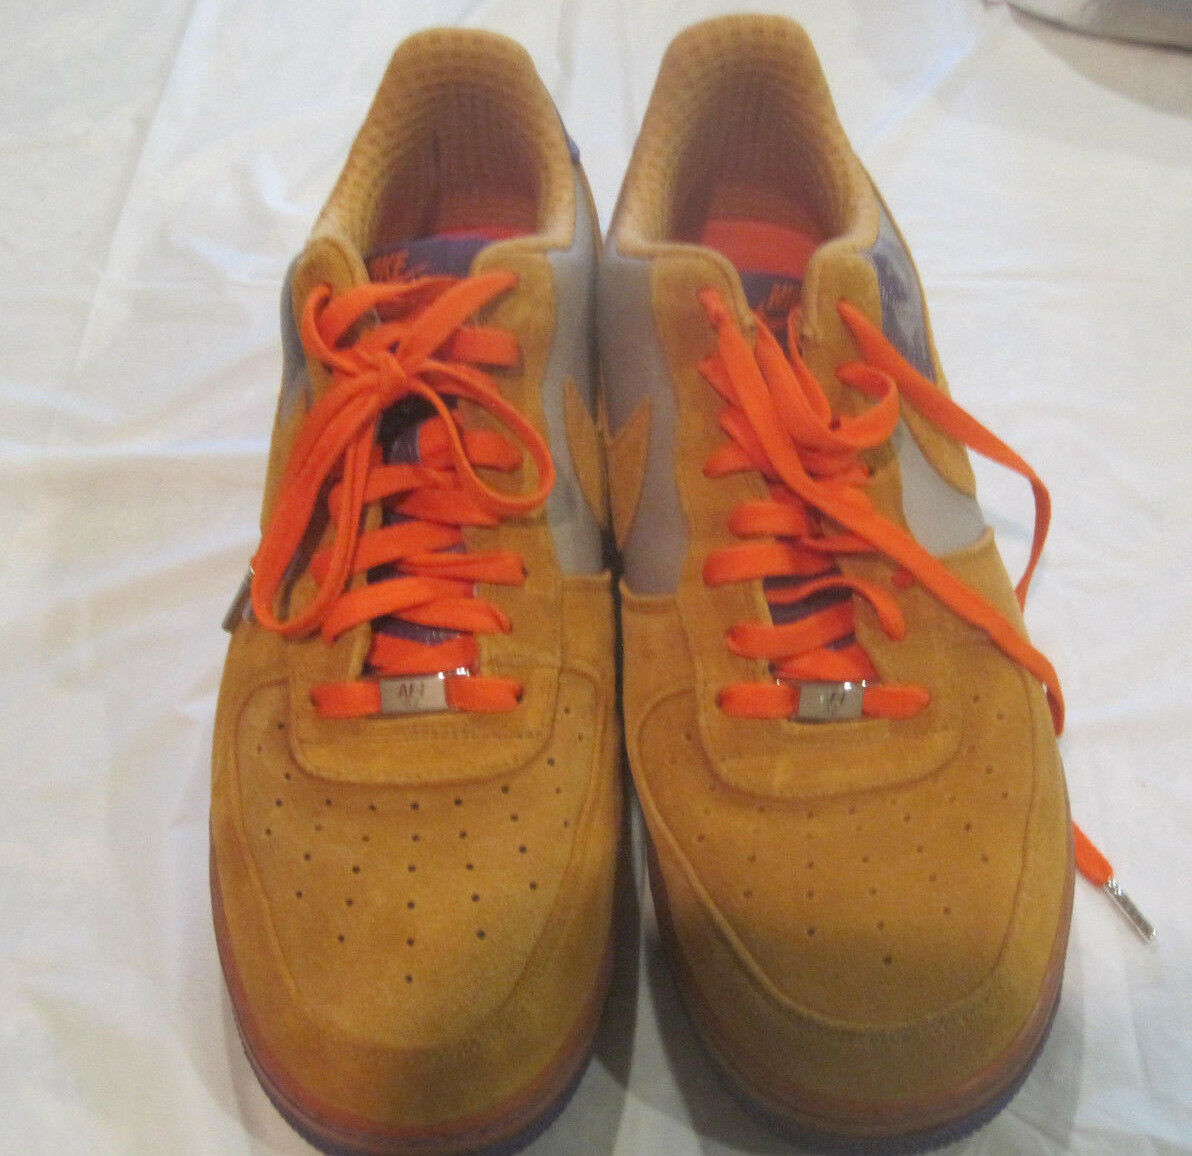 Nike Air Force 1 Amare Stoudemire 315182-071~Mens Shoe Comfortable New shoes for men and women, limited time discount